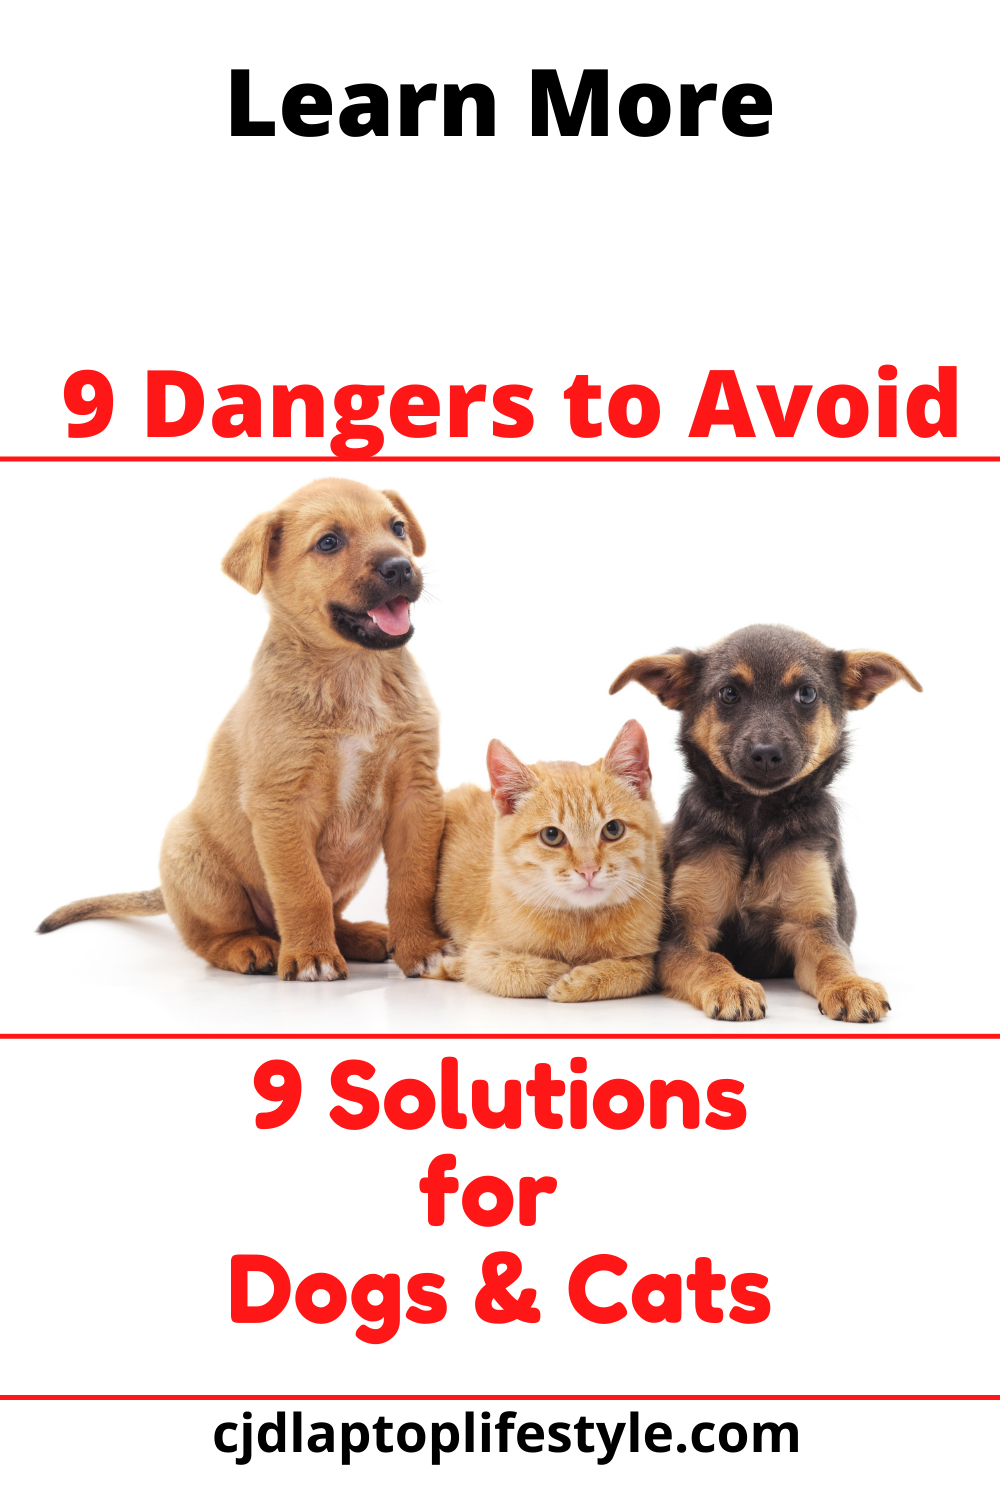 Avoid these 9 Everyday Hazards for Your Cats and Dogs